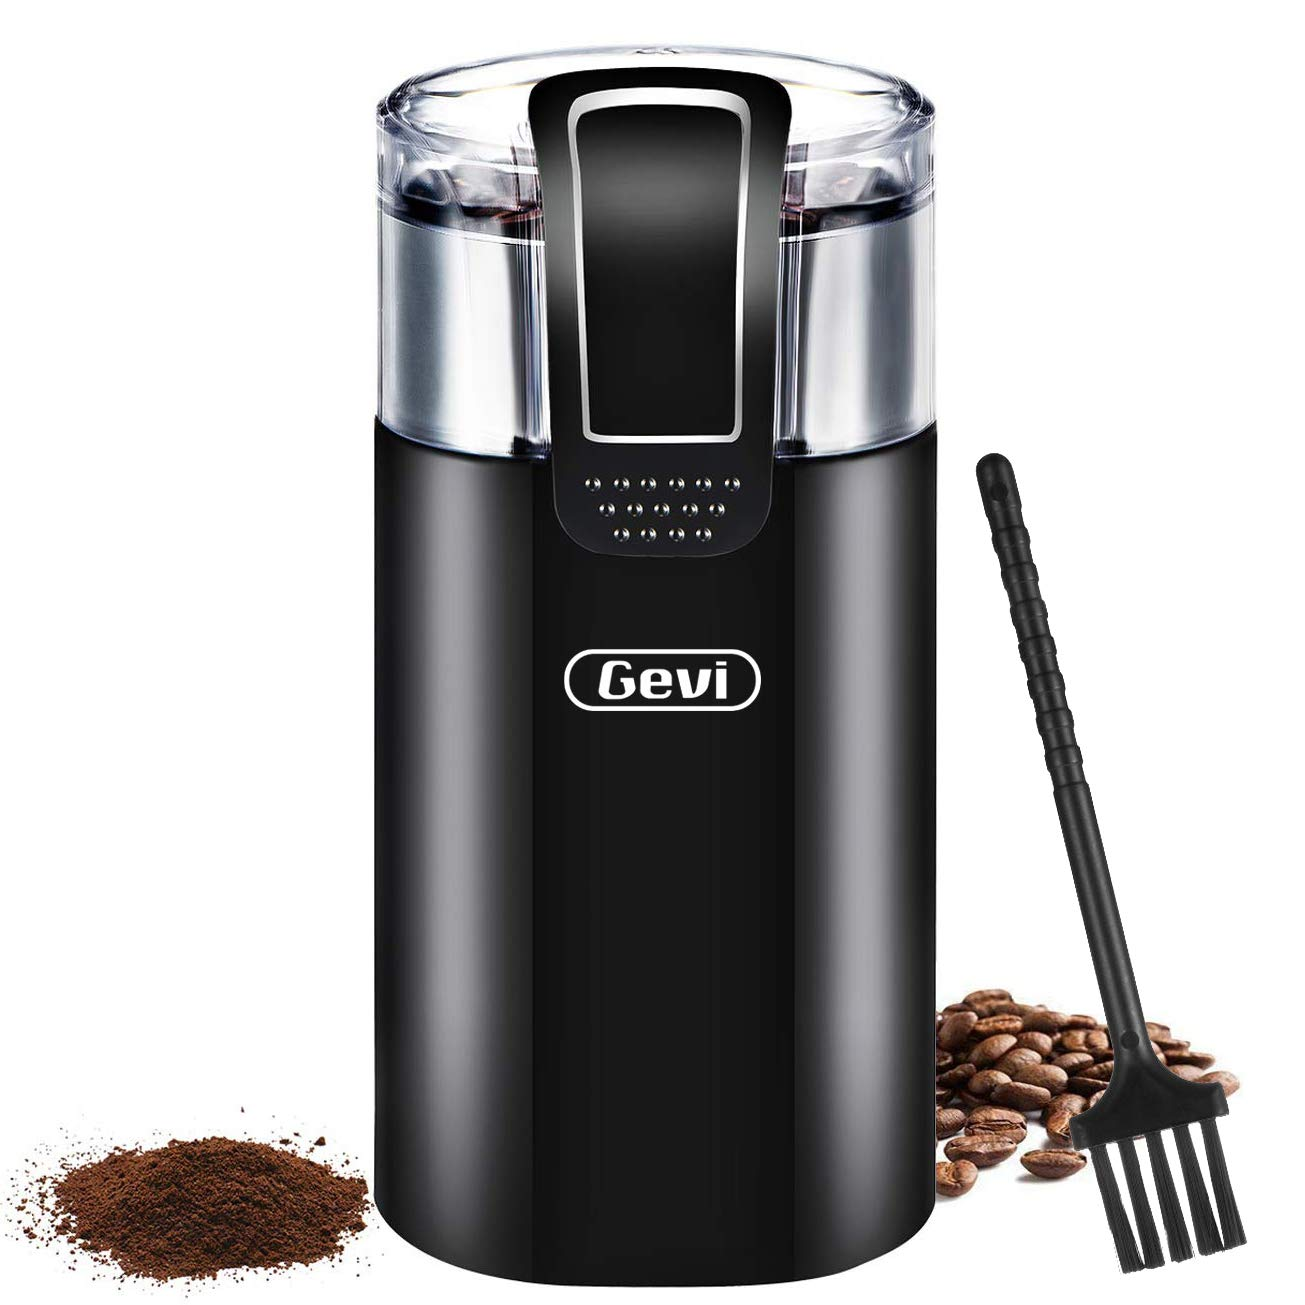 Coffee Grinder Electric Spice Bean Grinding Machine with 120V Powerful Stainless Steel Blade for Dry Spices Nuts, Ground, Grains 8 Cups Large Capacity by ISIYINER